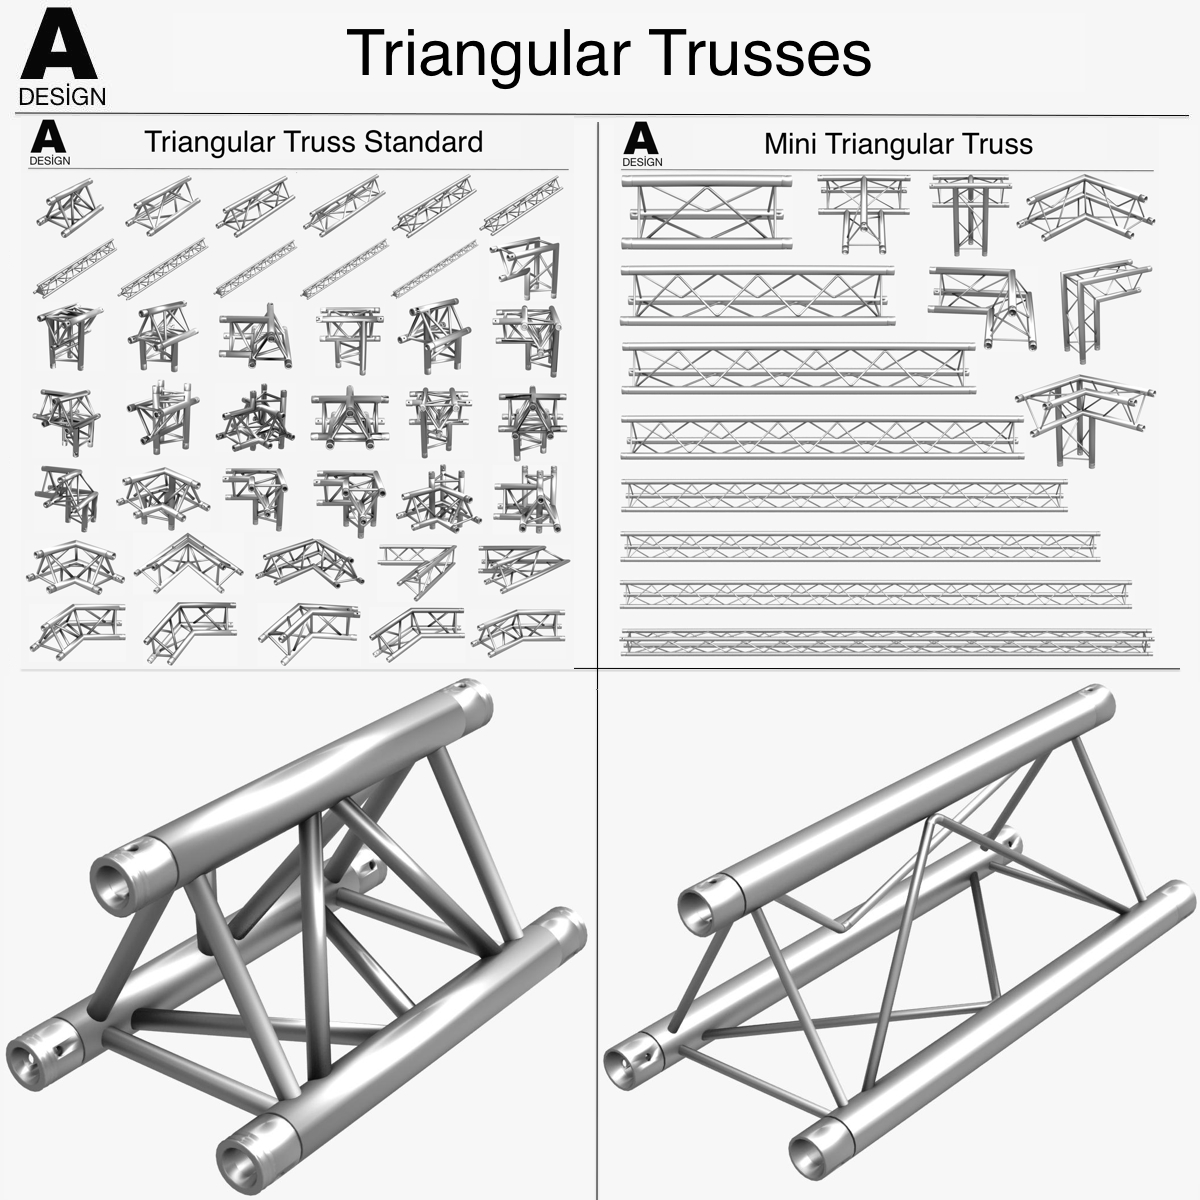 triangular trusses (collection 55 modular pieces) 3d model 3ds max dxf fbx c4d dae texture obj 216206